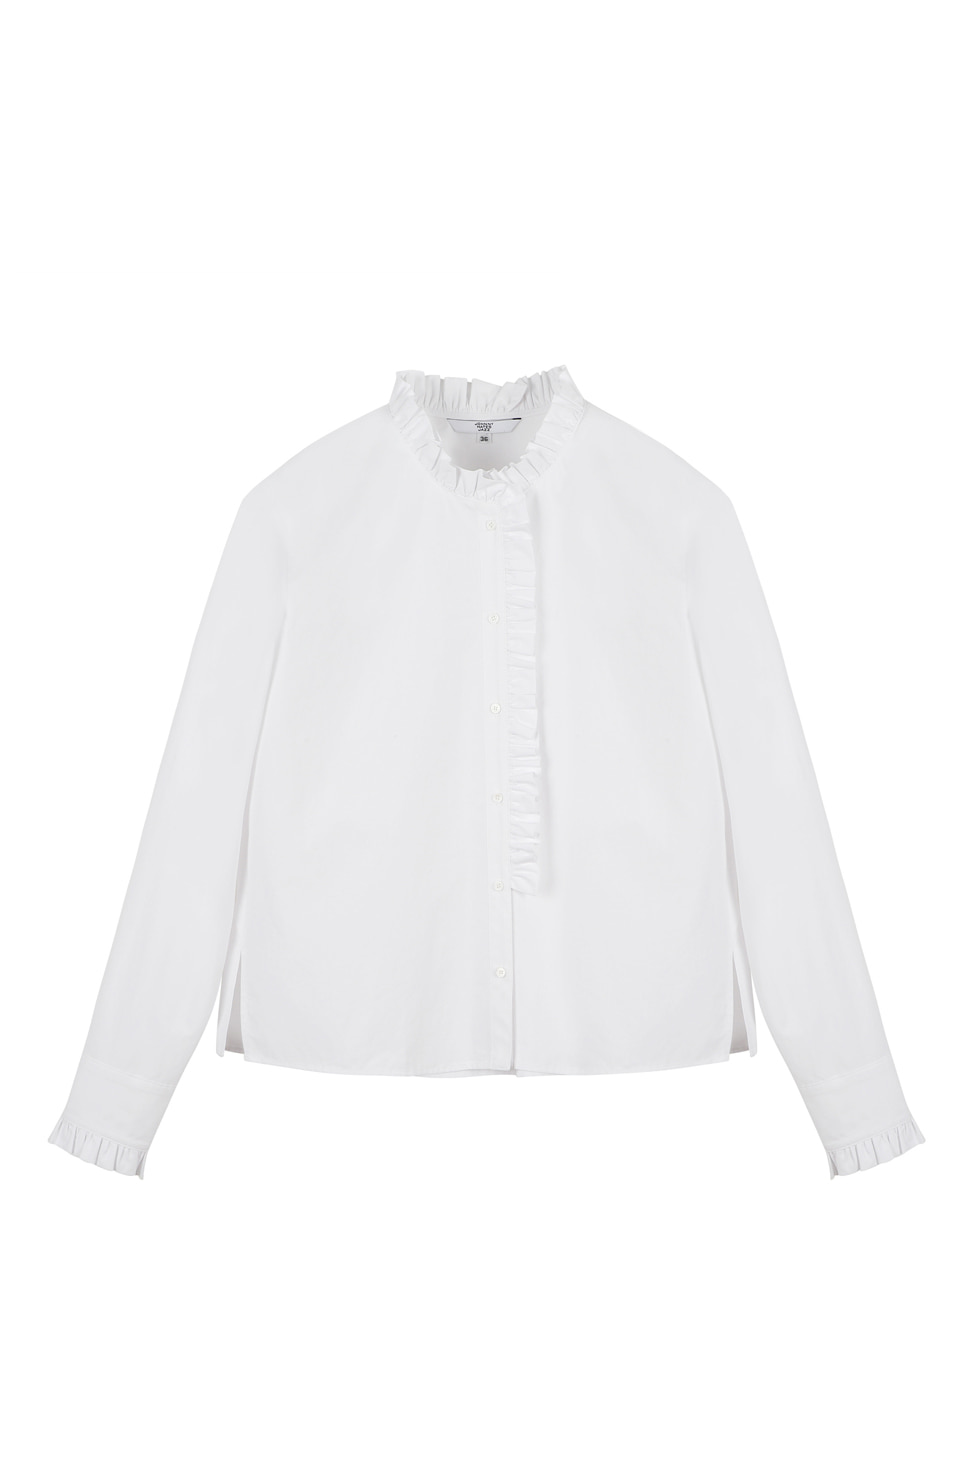 COTTON RUFFLE BLOUSE - WHITE